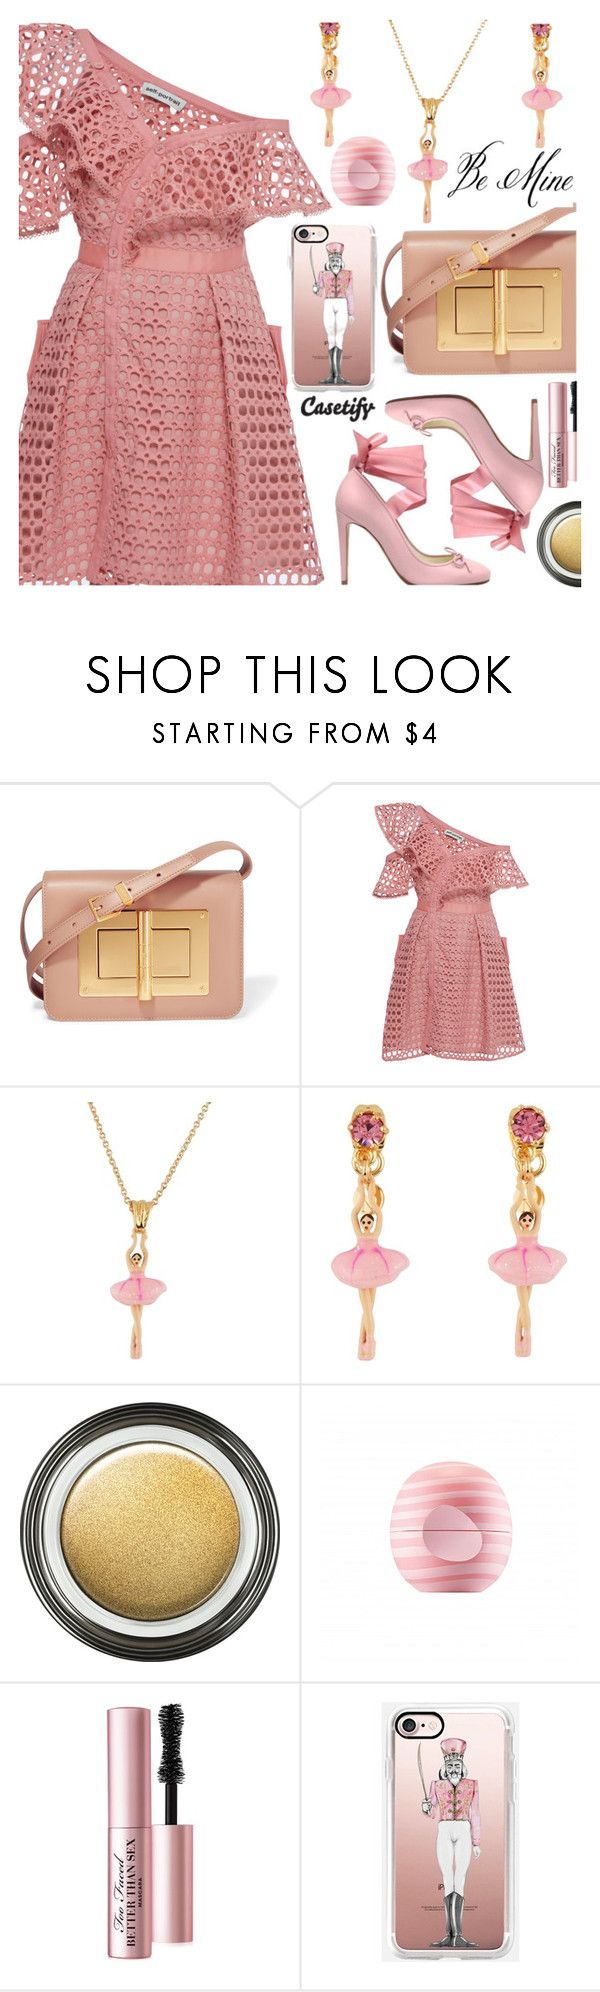 """CASETIFY - BALLERINA"" by deborah-calton ❤ liked on Polyvore featuring Tom Ford, self-portrait, Les Néréides, Giorgio Armani, Casetify, Eos, Too Faced Cosmetics, PinkDress, valentinesday and valentinedress"